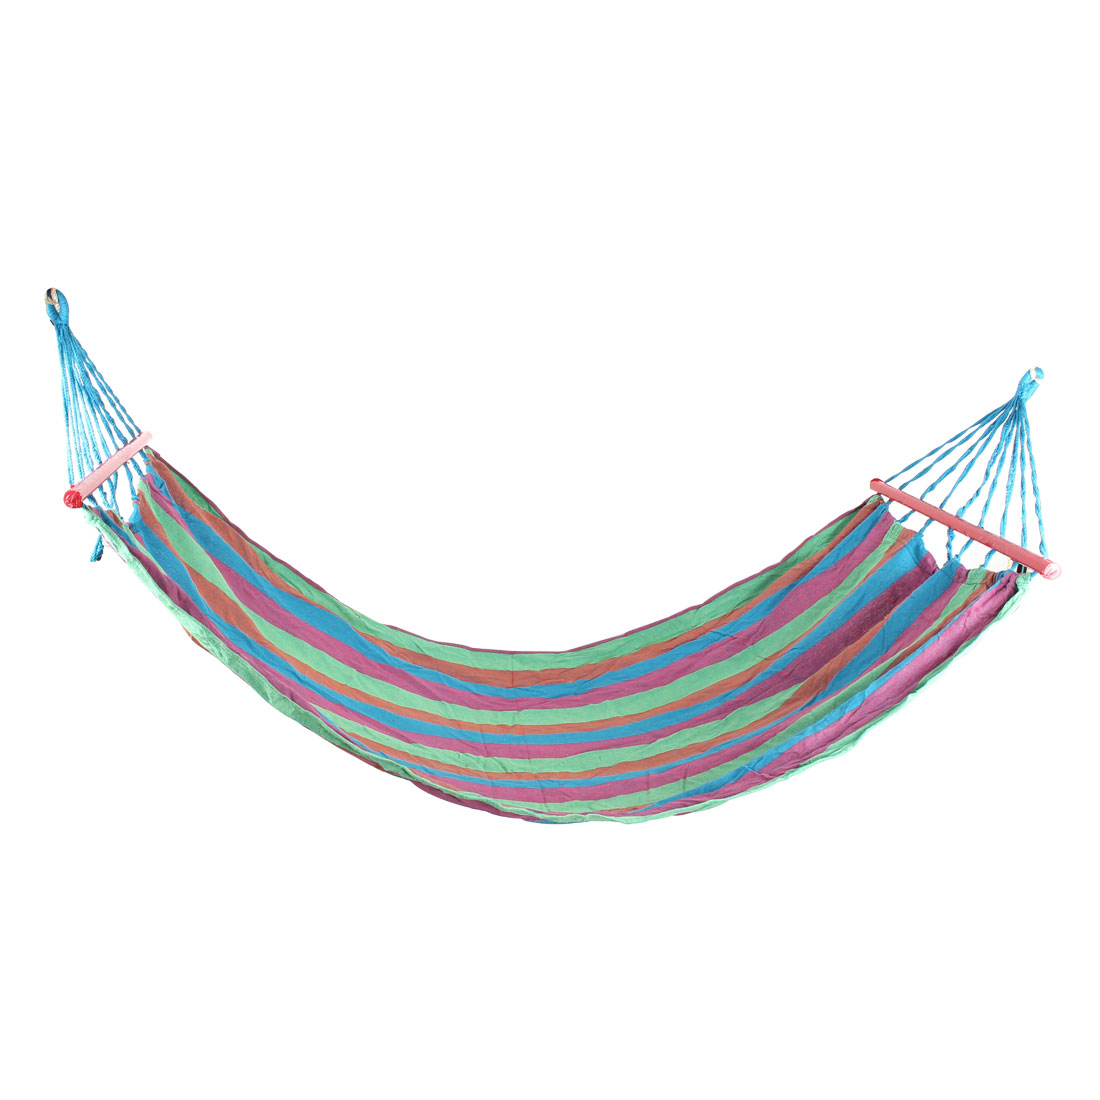 Outdoor Camping Leisure Canvas Hanging Sleeping Bed Hammock Colorful 190X80cm